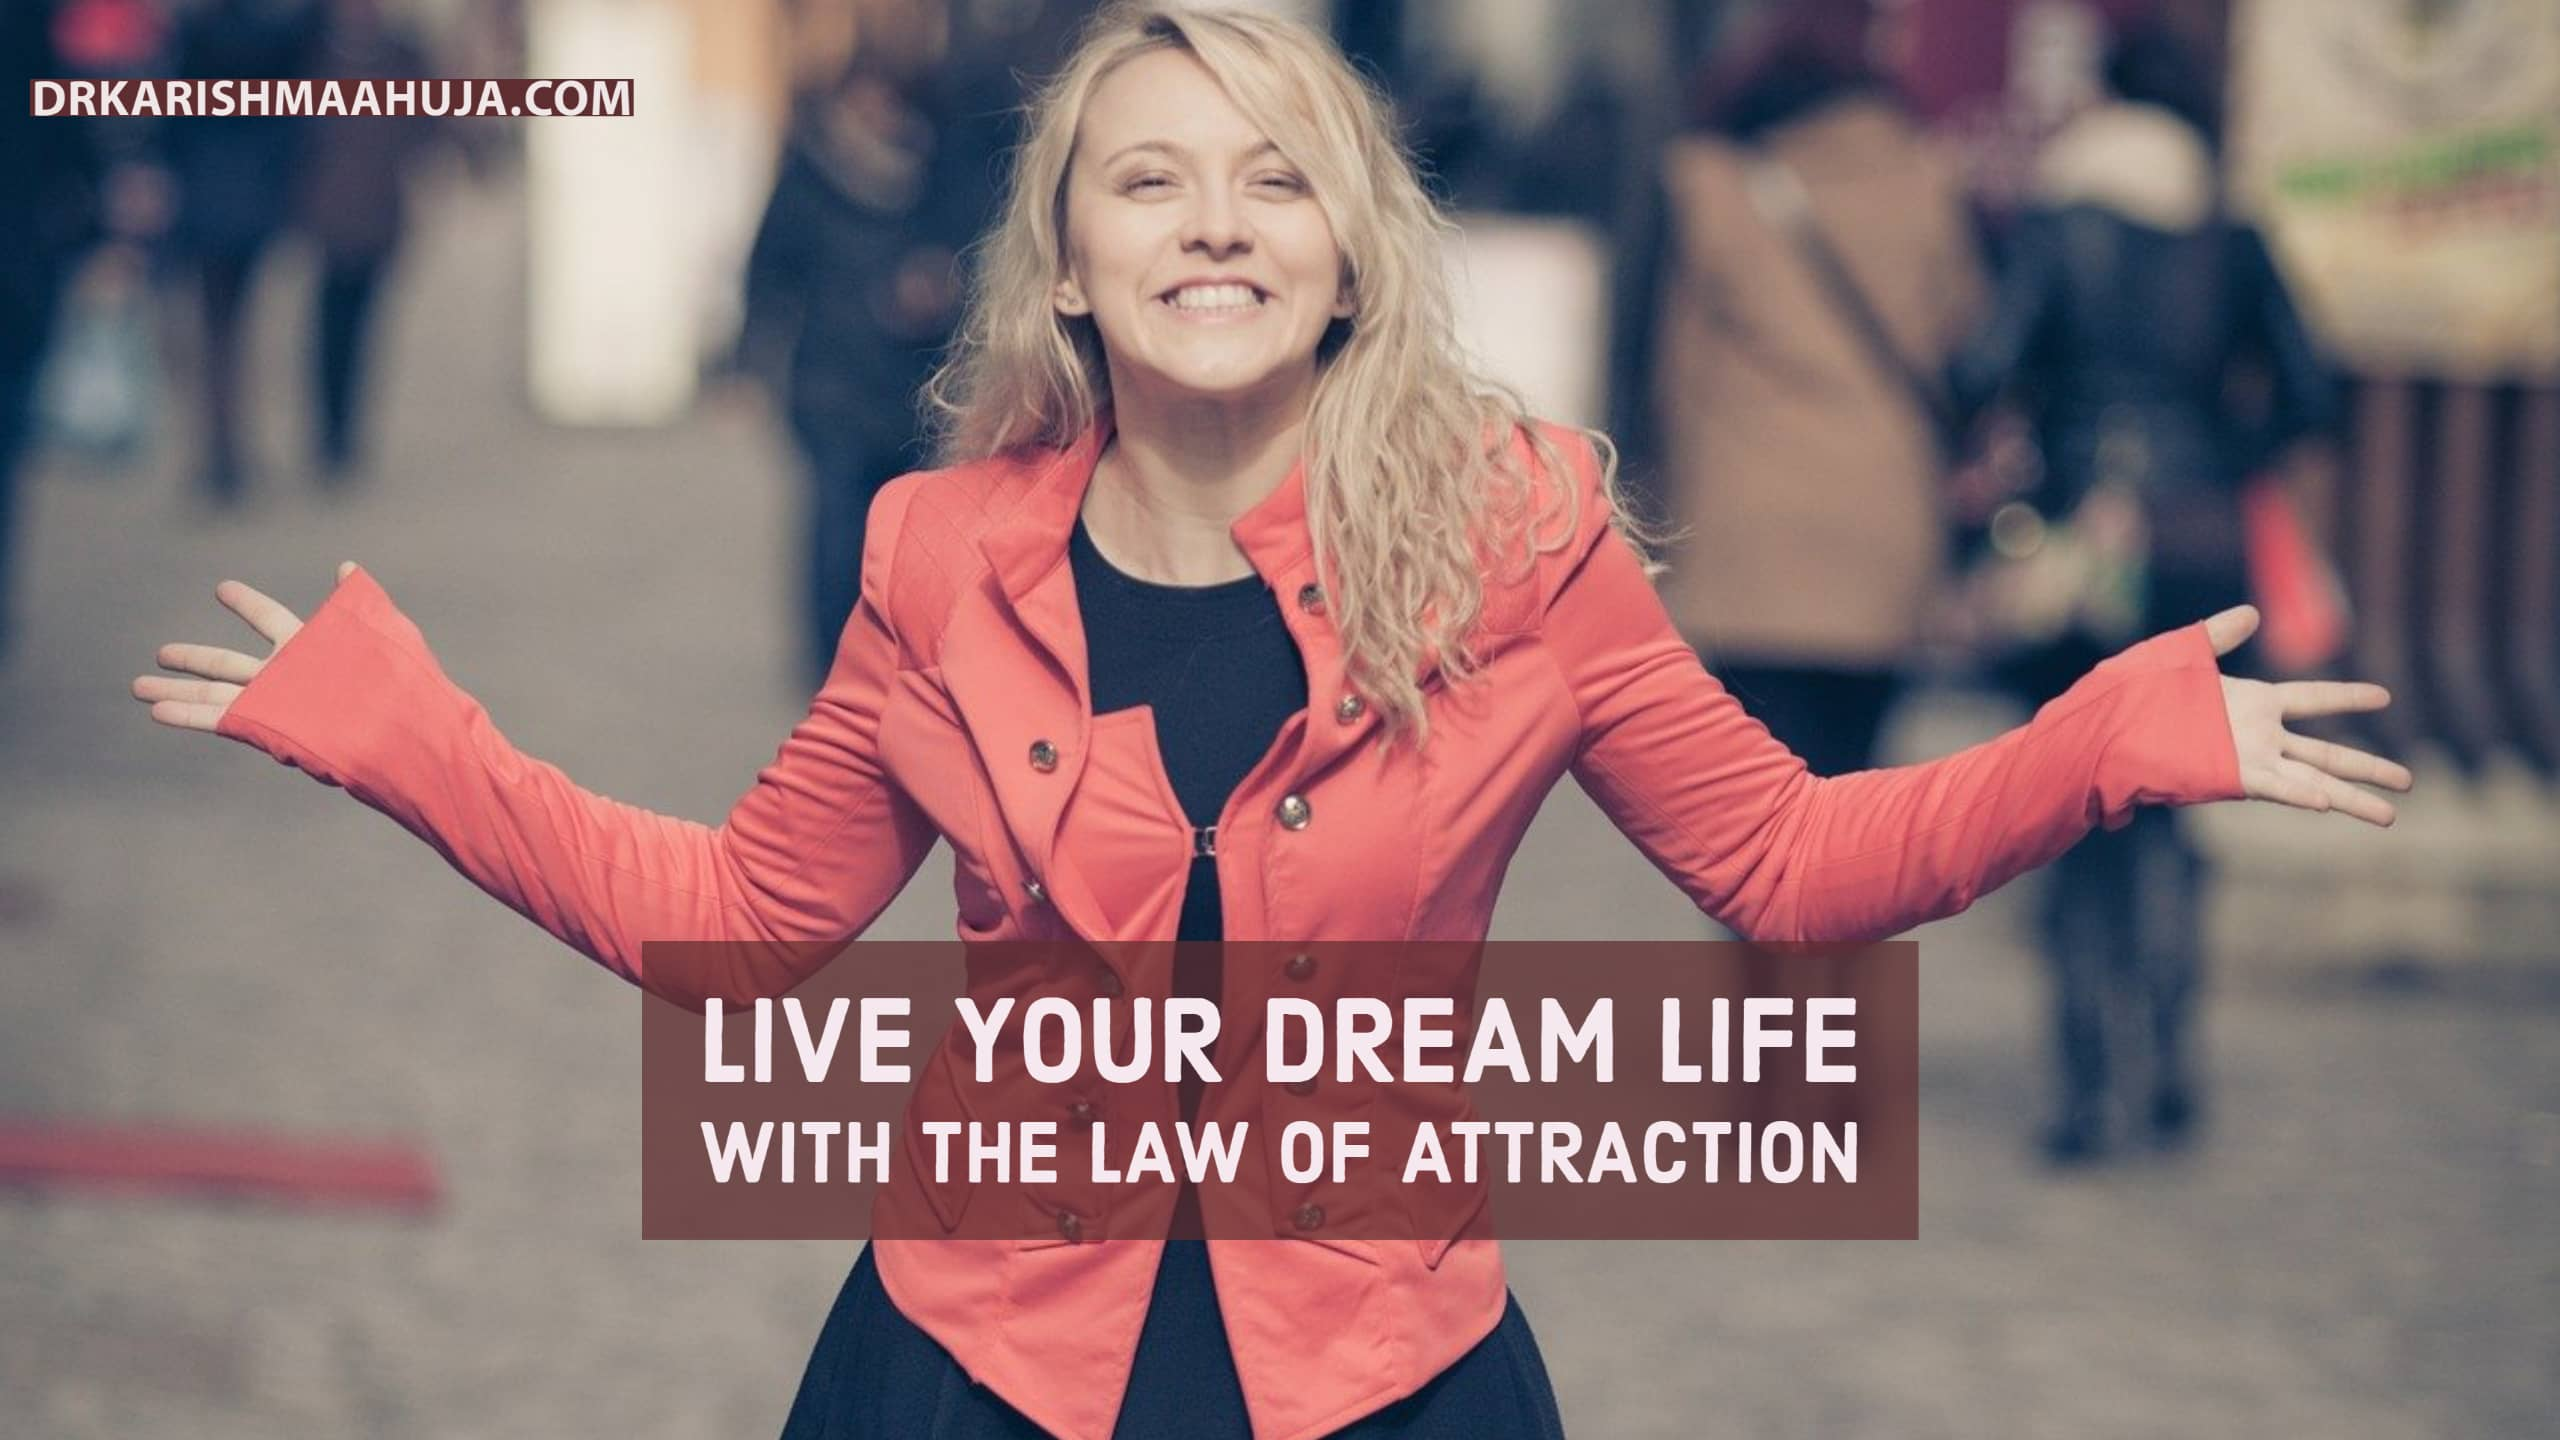 Live Your Dream Life With The Law Of Attraction!